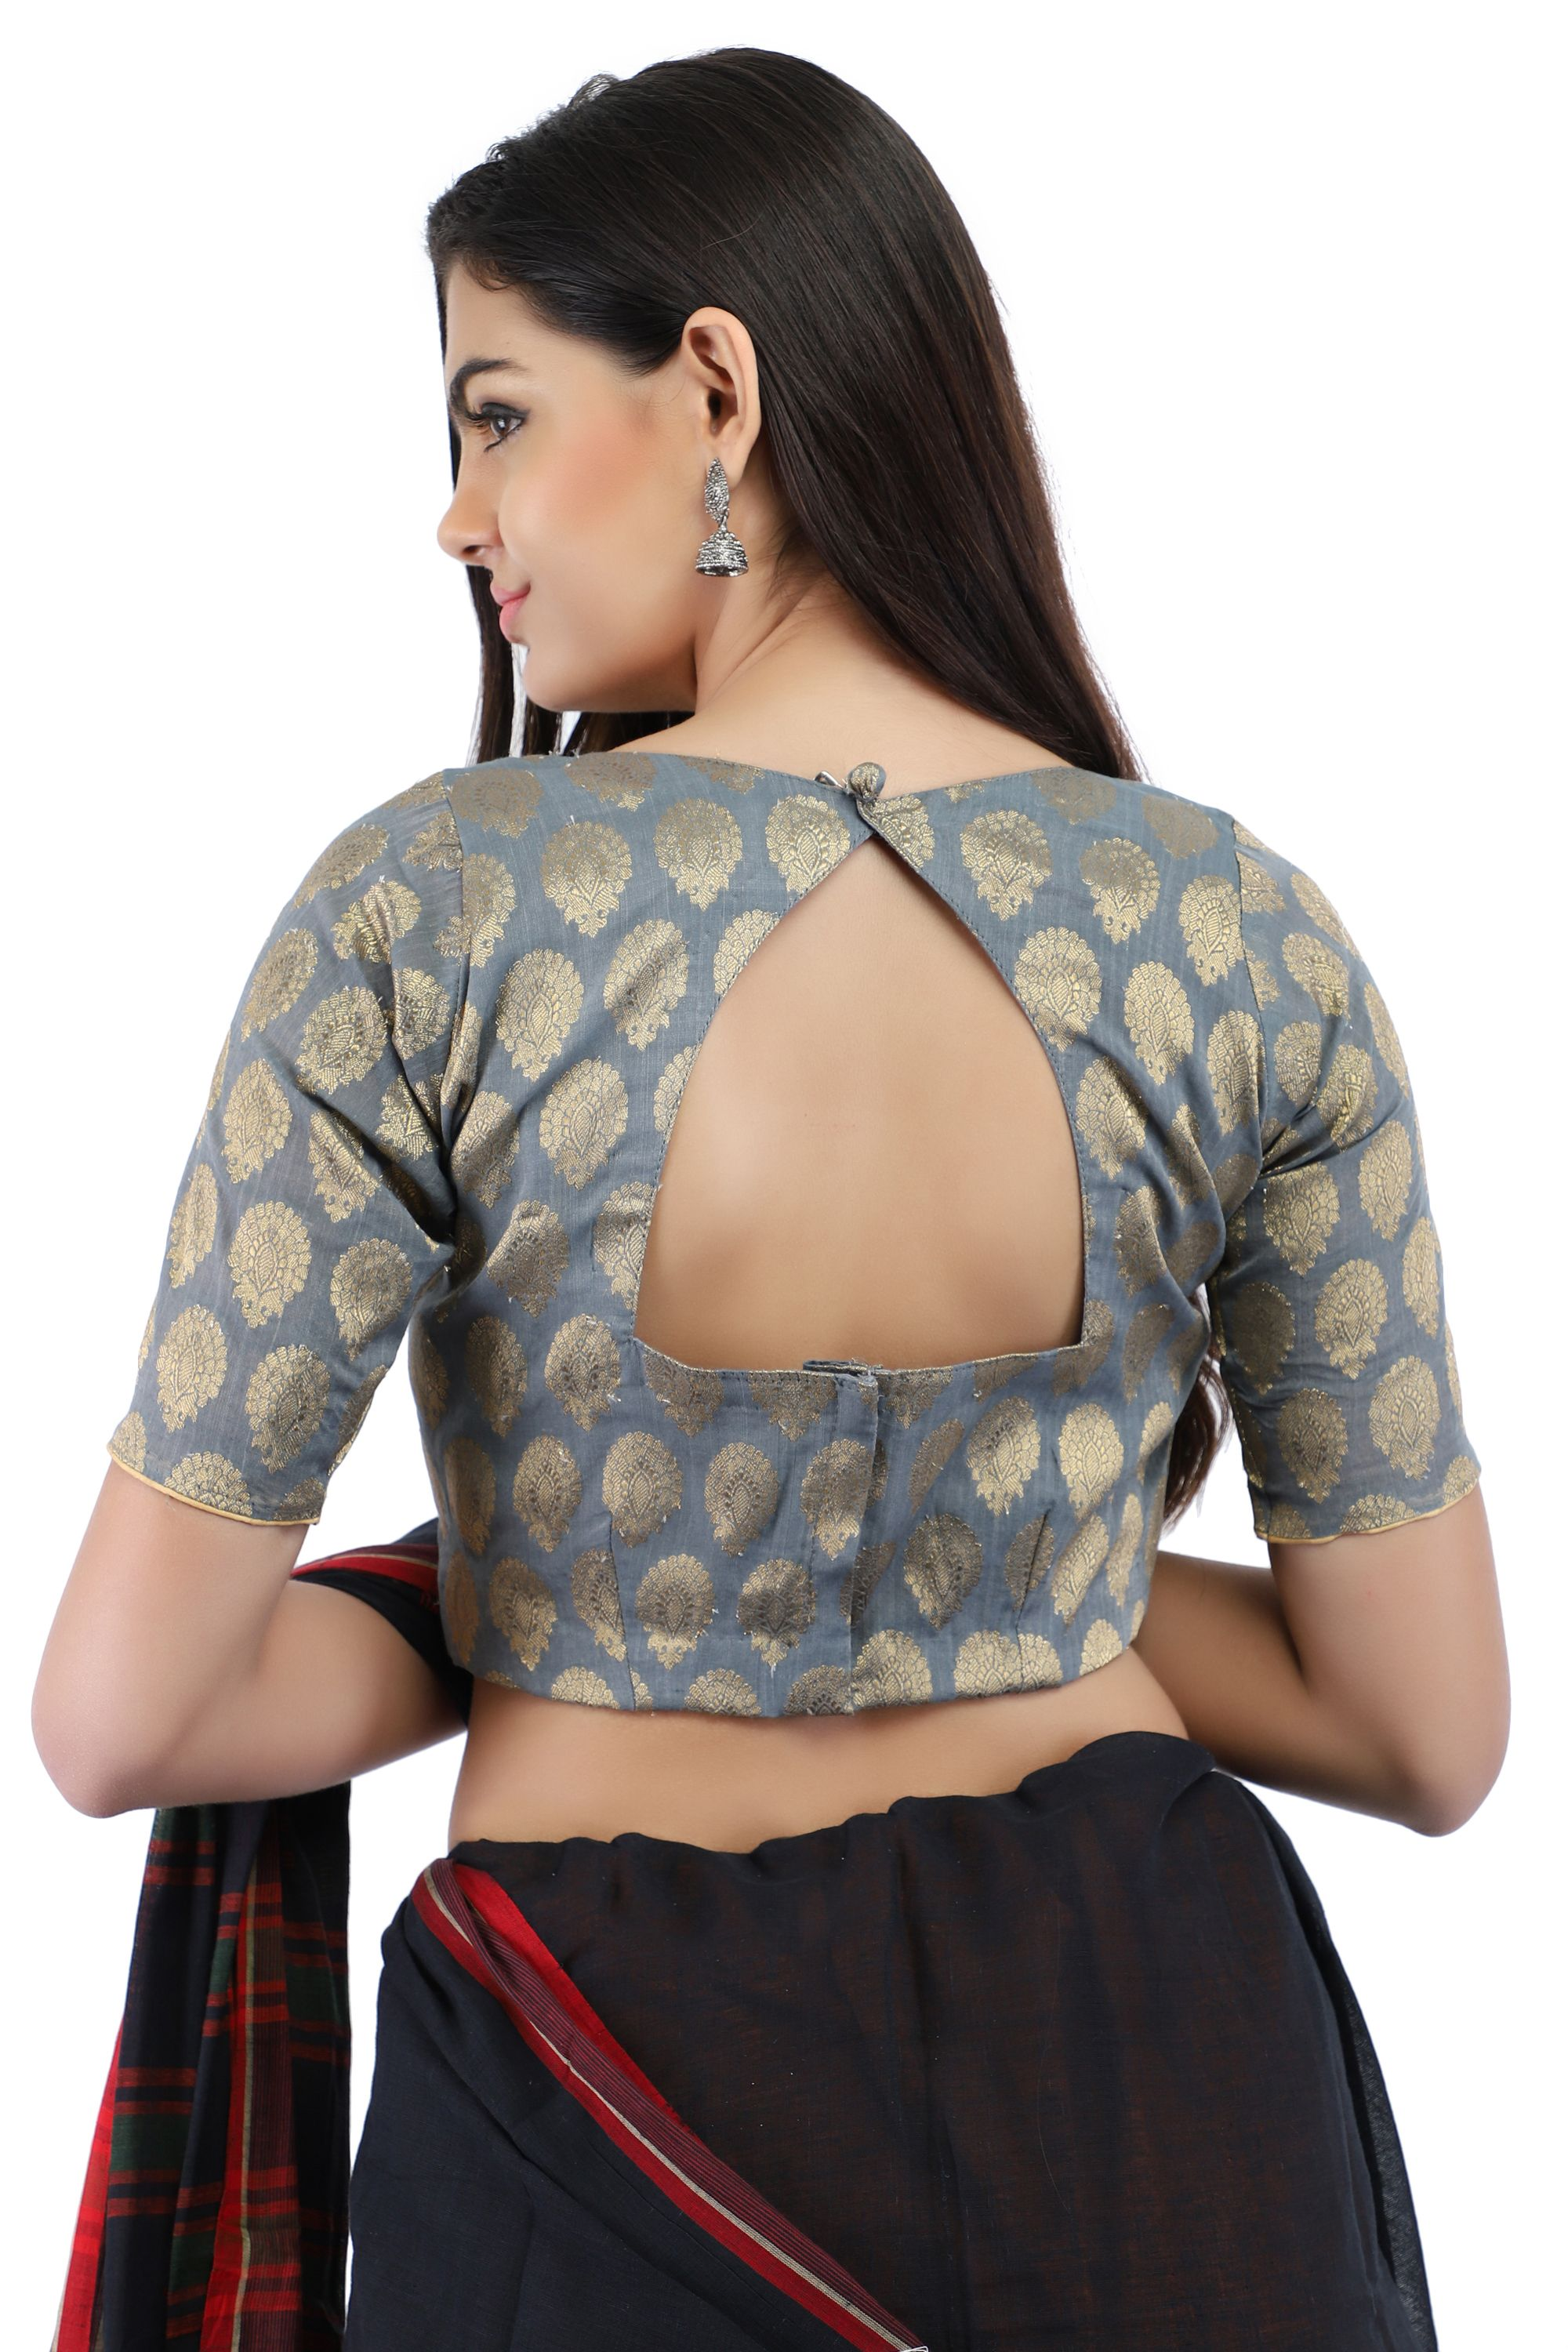 Banarasi Chanderi Silk Jacquard Boat Neck Blouse In Grey With Hook Closure on Back 2